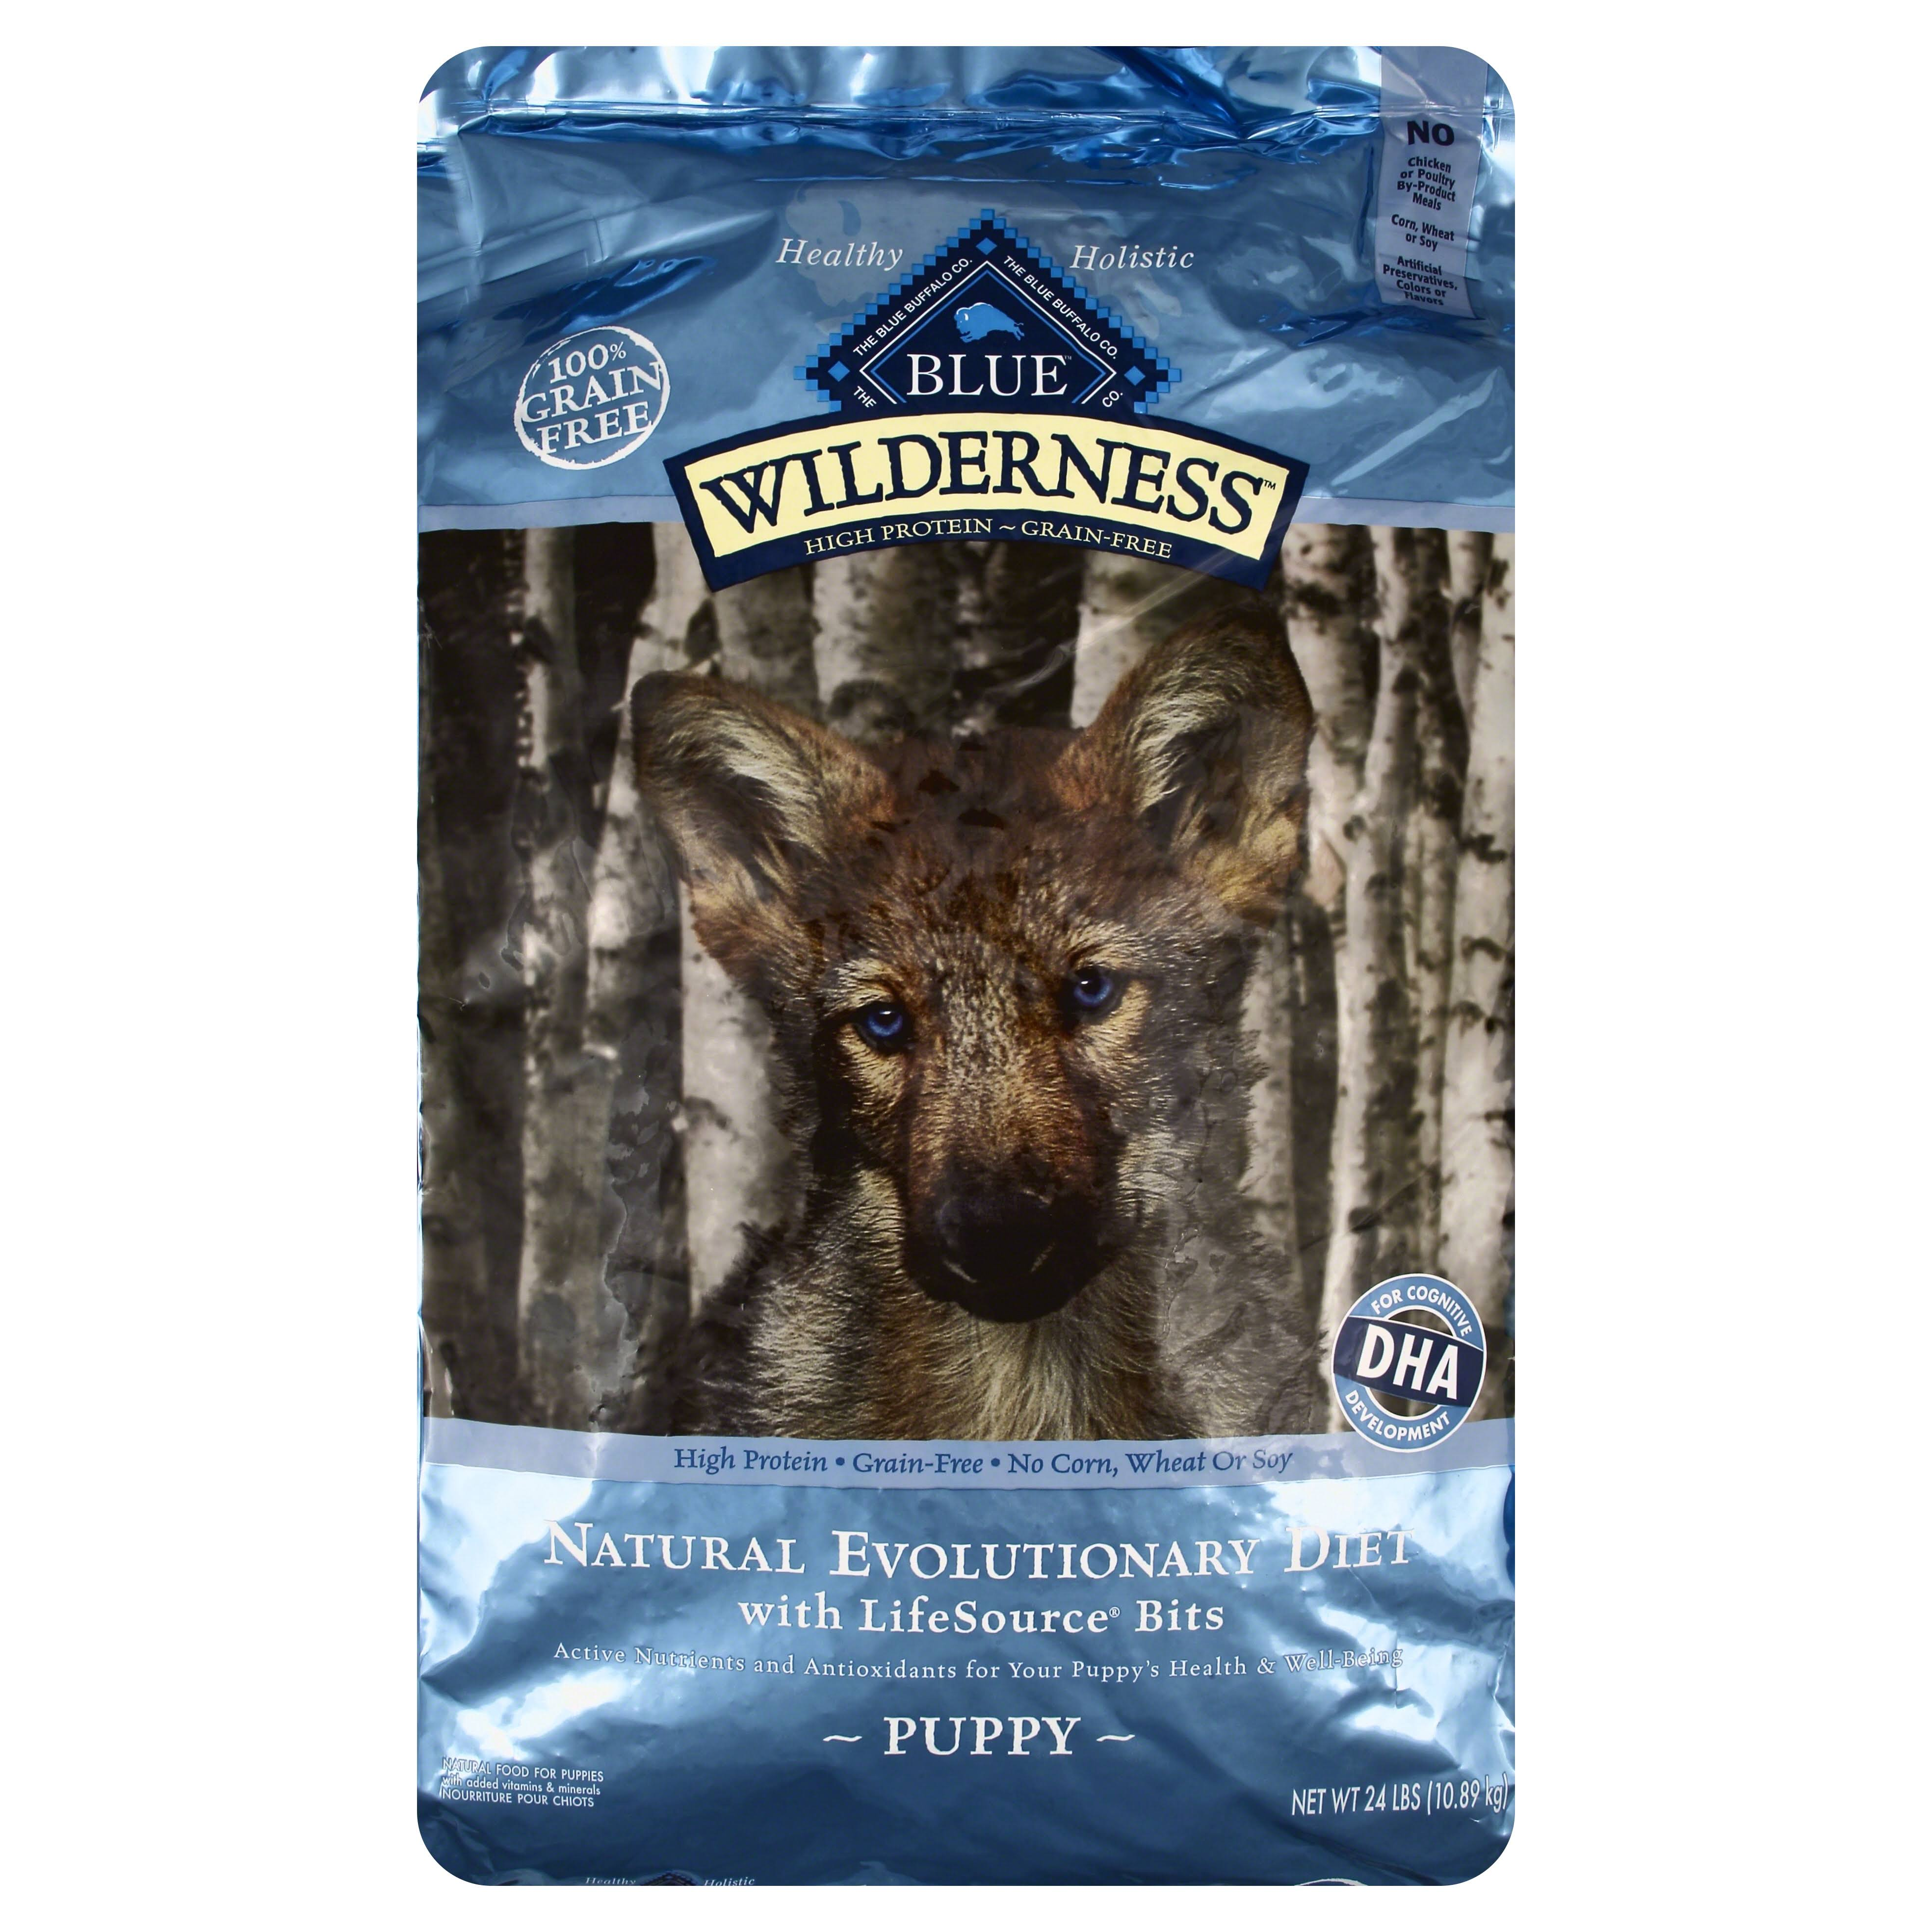 Blue Buffalo Wilderness Puppy Dog Food - Chicken Recipe